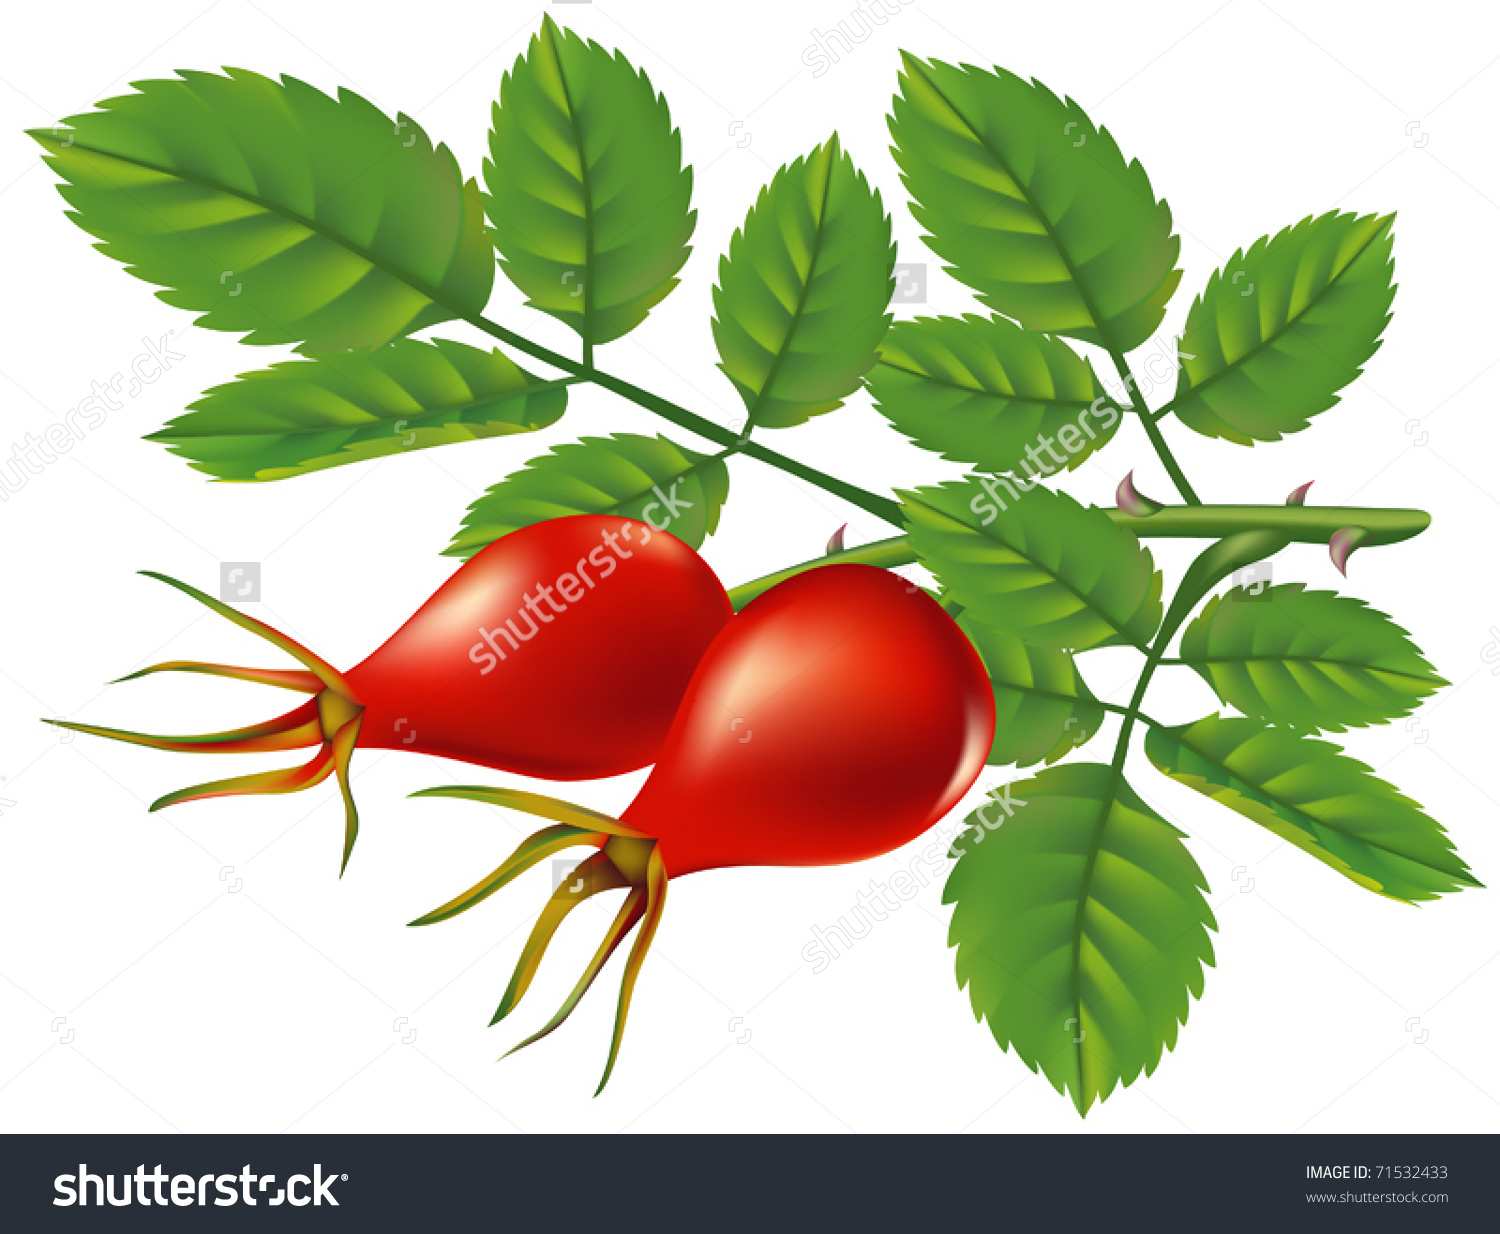 Branch Wild Rose Hips Vector Illustration Stock Vector 71532433.